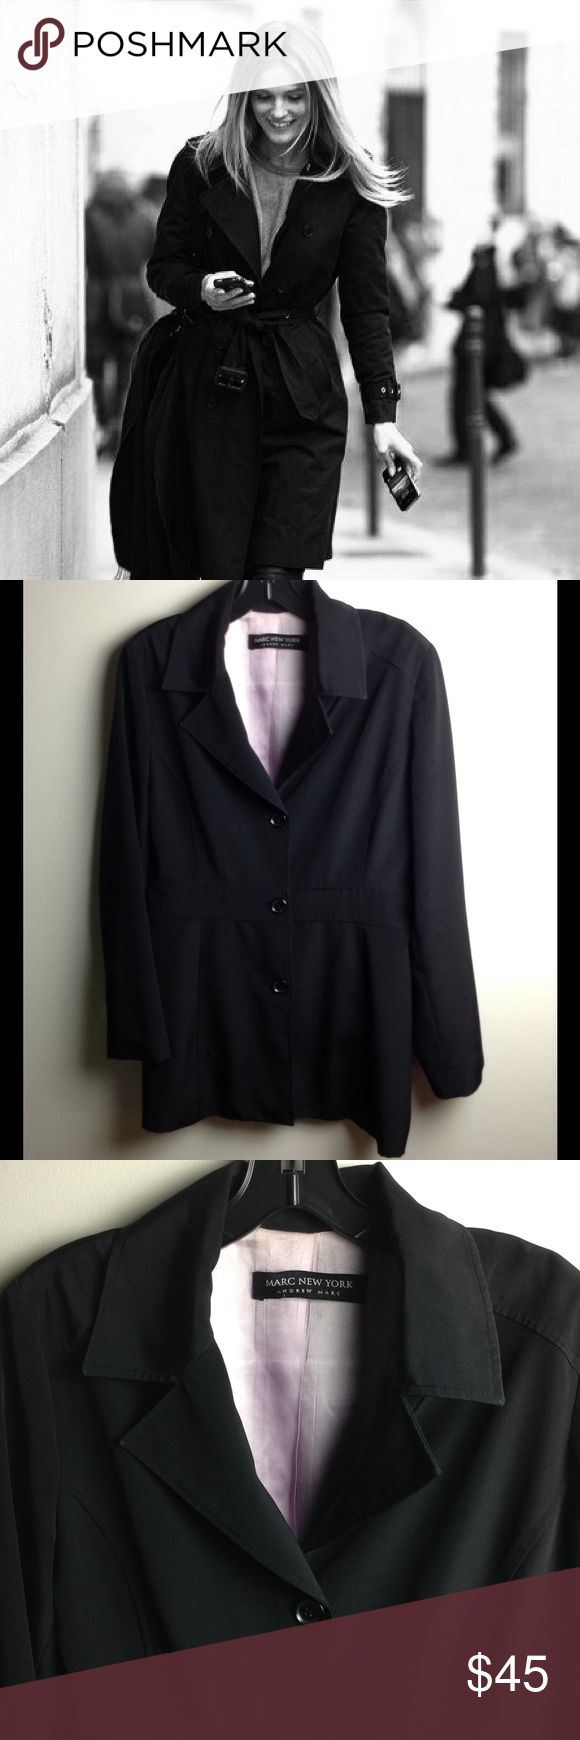 """⚜ Andrew Marc ⚜ Black Coat Stylish & Classy Button Up Black Rain Coat with Lavender Lining ⚜ Approximate Measurements: Length 31"""", Bust 41"""", Waist 36 ⚜ Good Condition ( Pictures 2-7 Depict Actual Coat for Sale) Andrew Marc Jackets & Coats"""